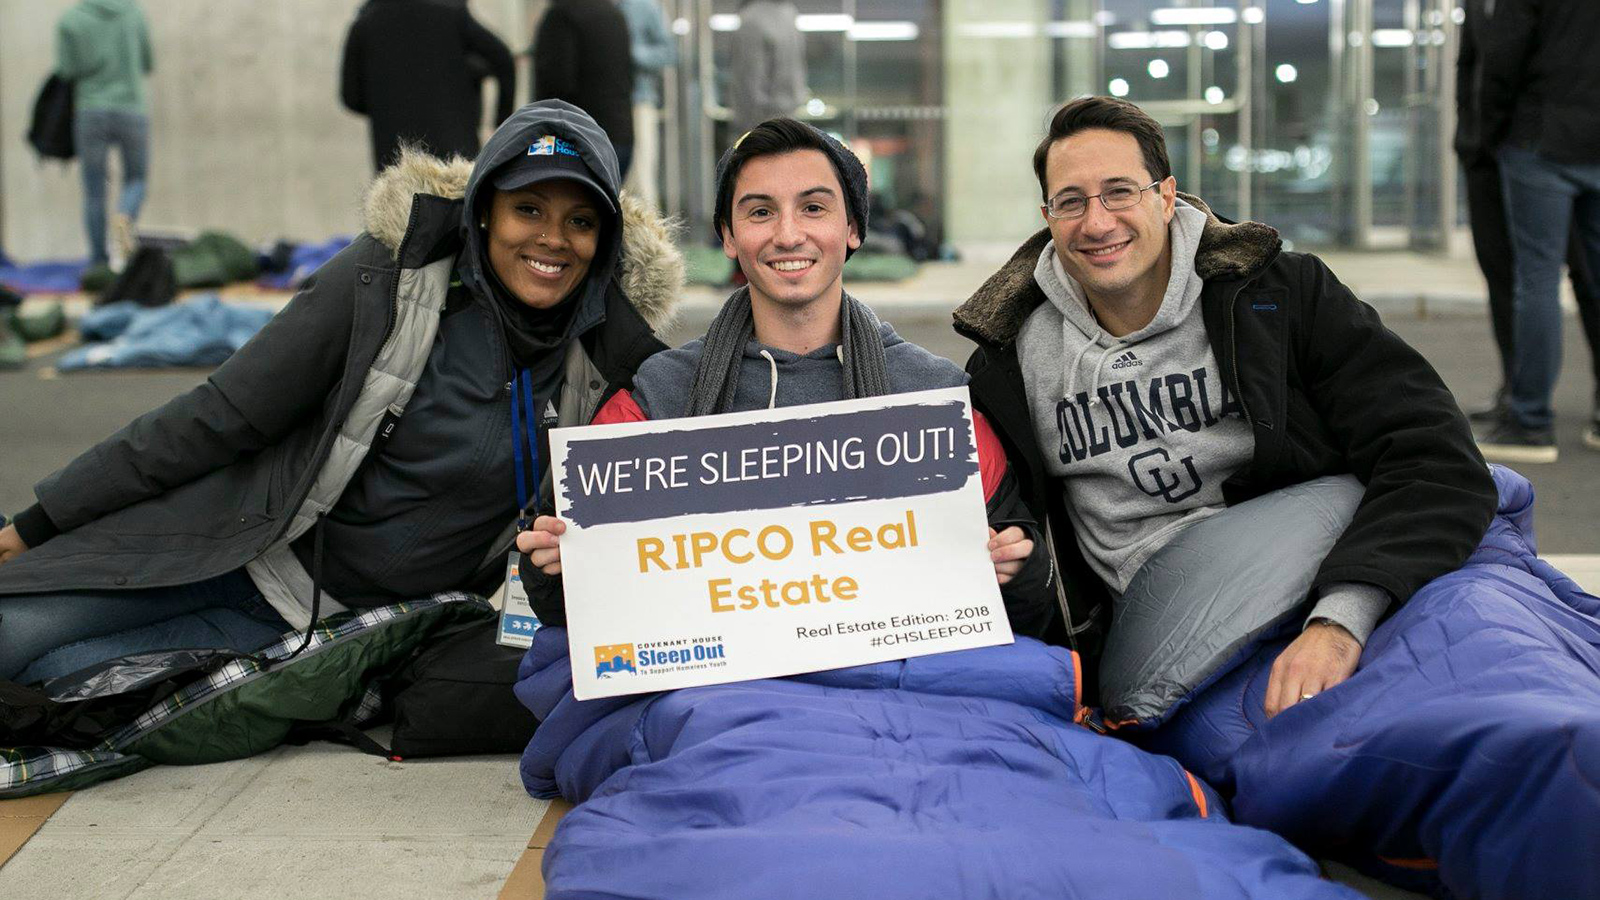 RIPCO sleeps out on sidewalk for homeless youth